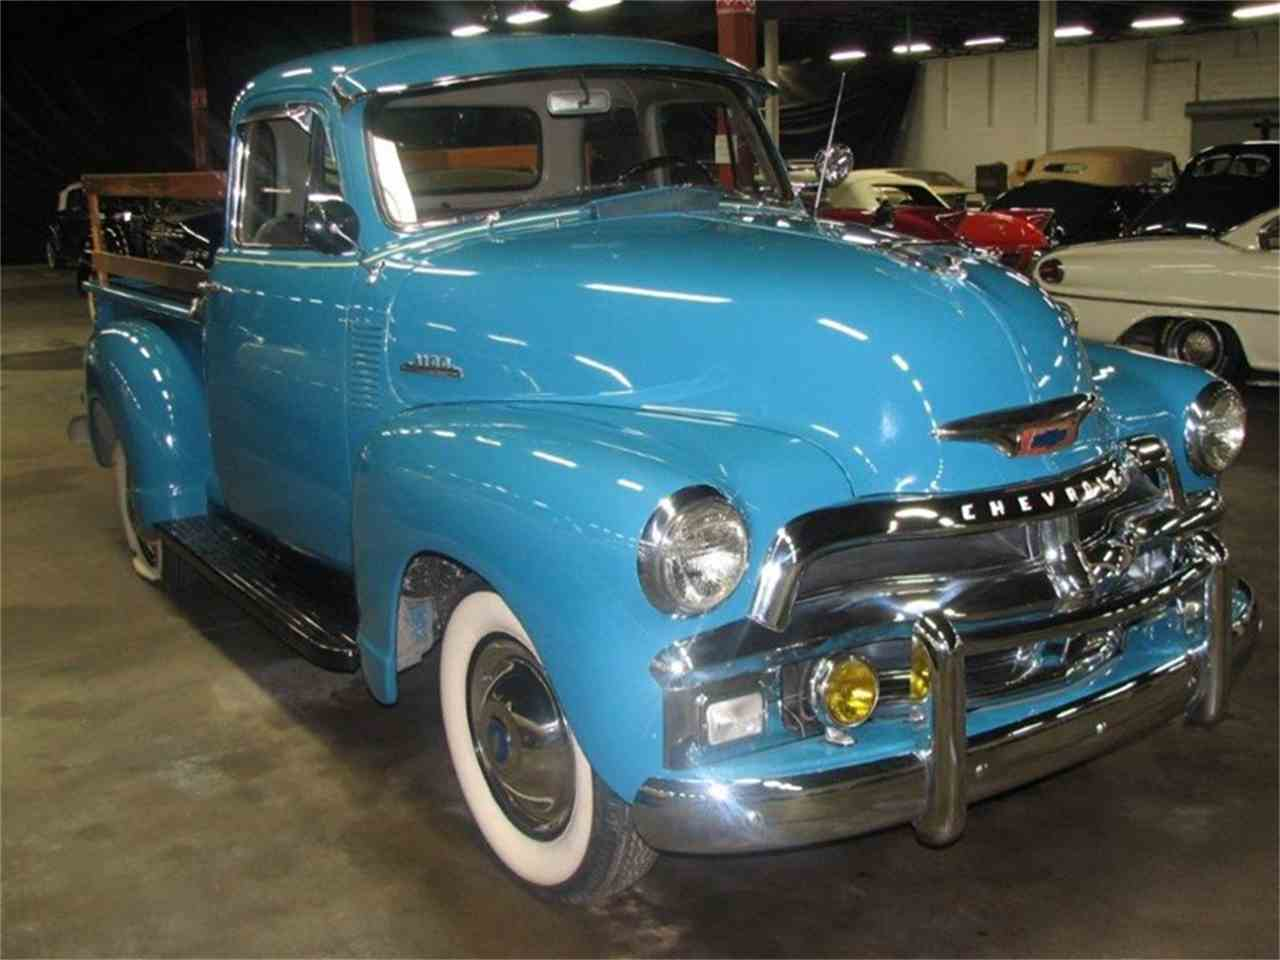 1954 chevrolet 3100 5 window pickup for sale classiccars for 1954 chevy truck 5 window for sale